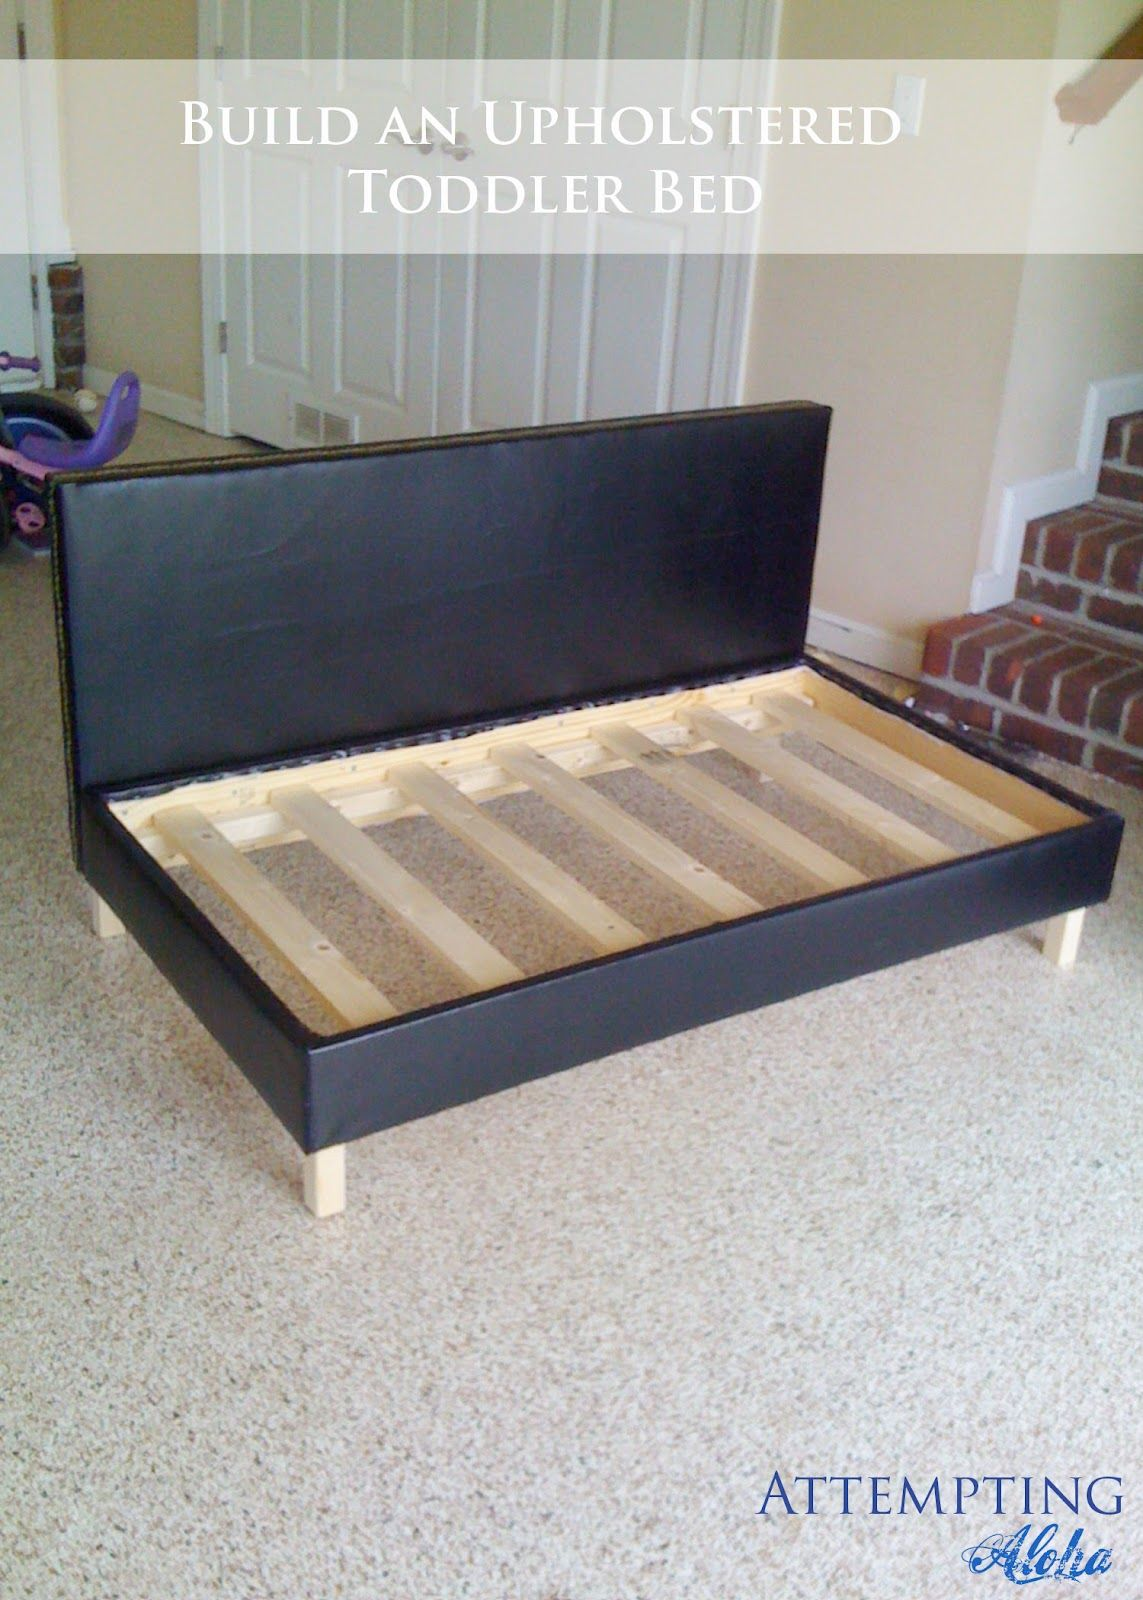 Diy Upholstered Toddler Bed Couch Plans Diy Toddler Bed Diy Couch Diy Bed